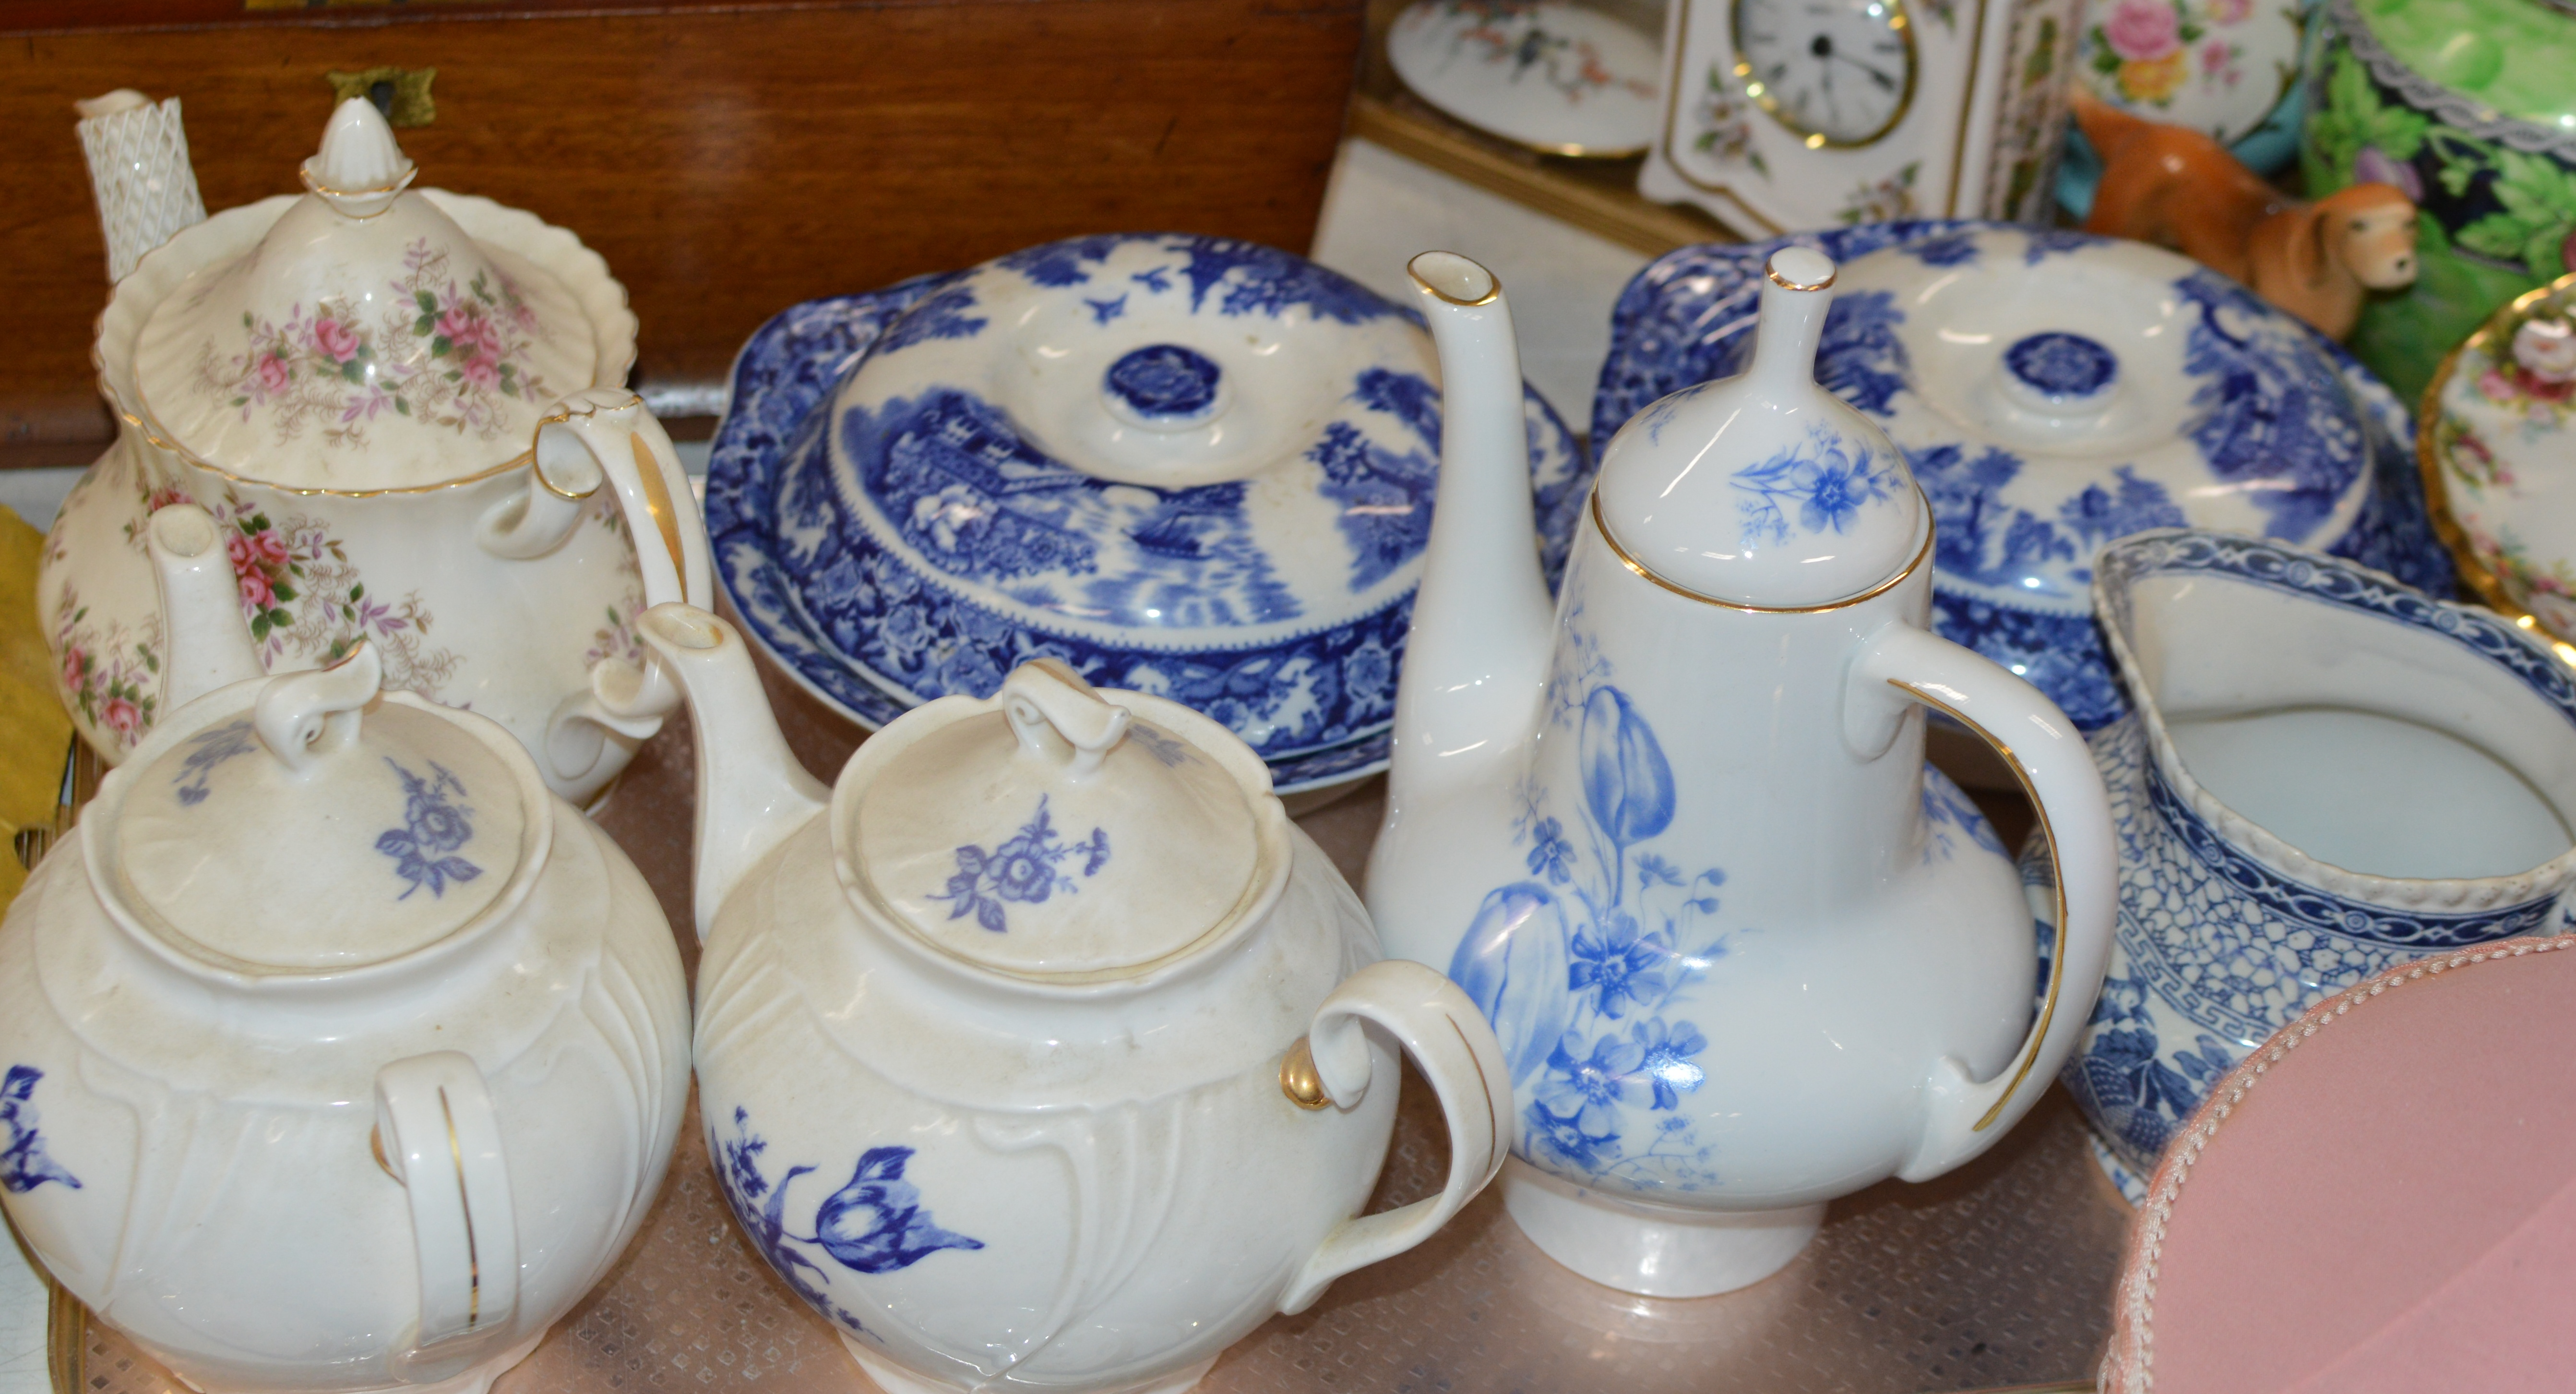 Lot 609 - TRAY CONTAINING 4 TEAPOTS, WATER JUG & 2 LIDDED TUREENS